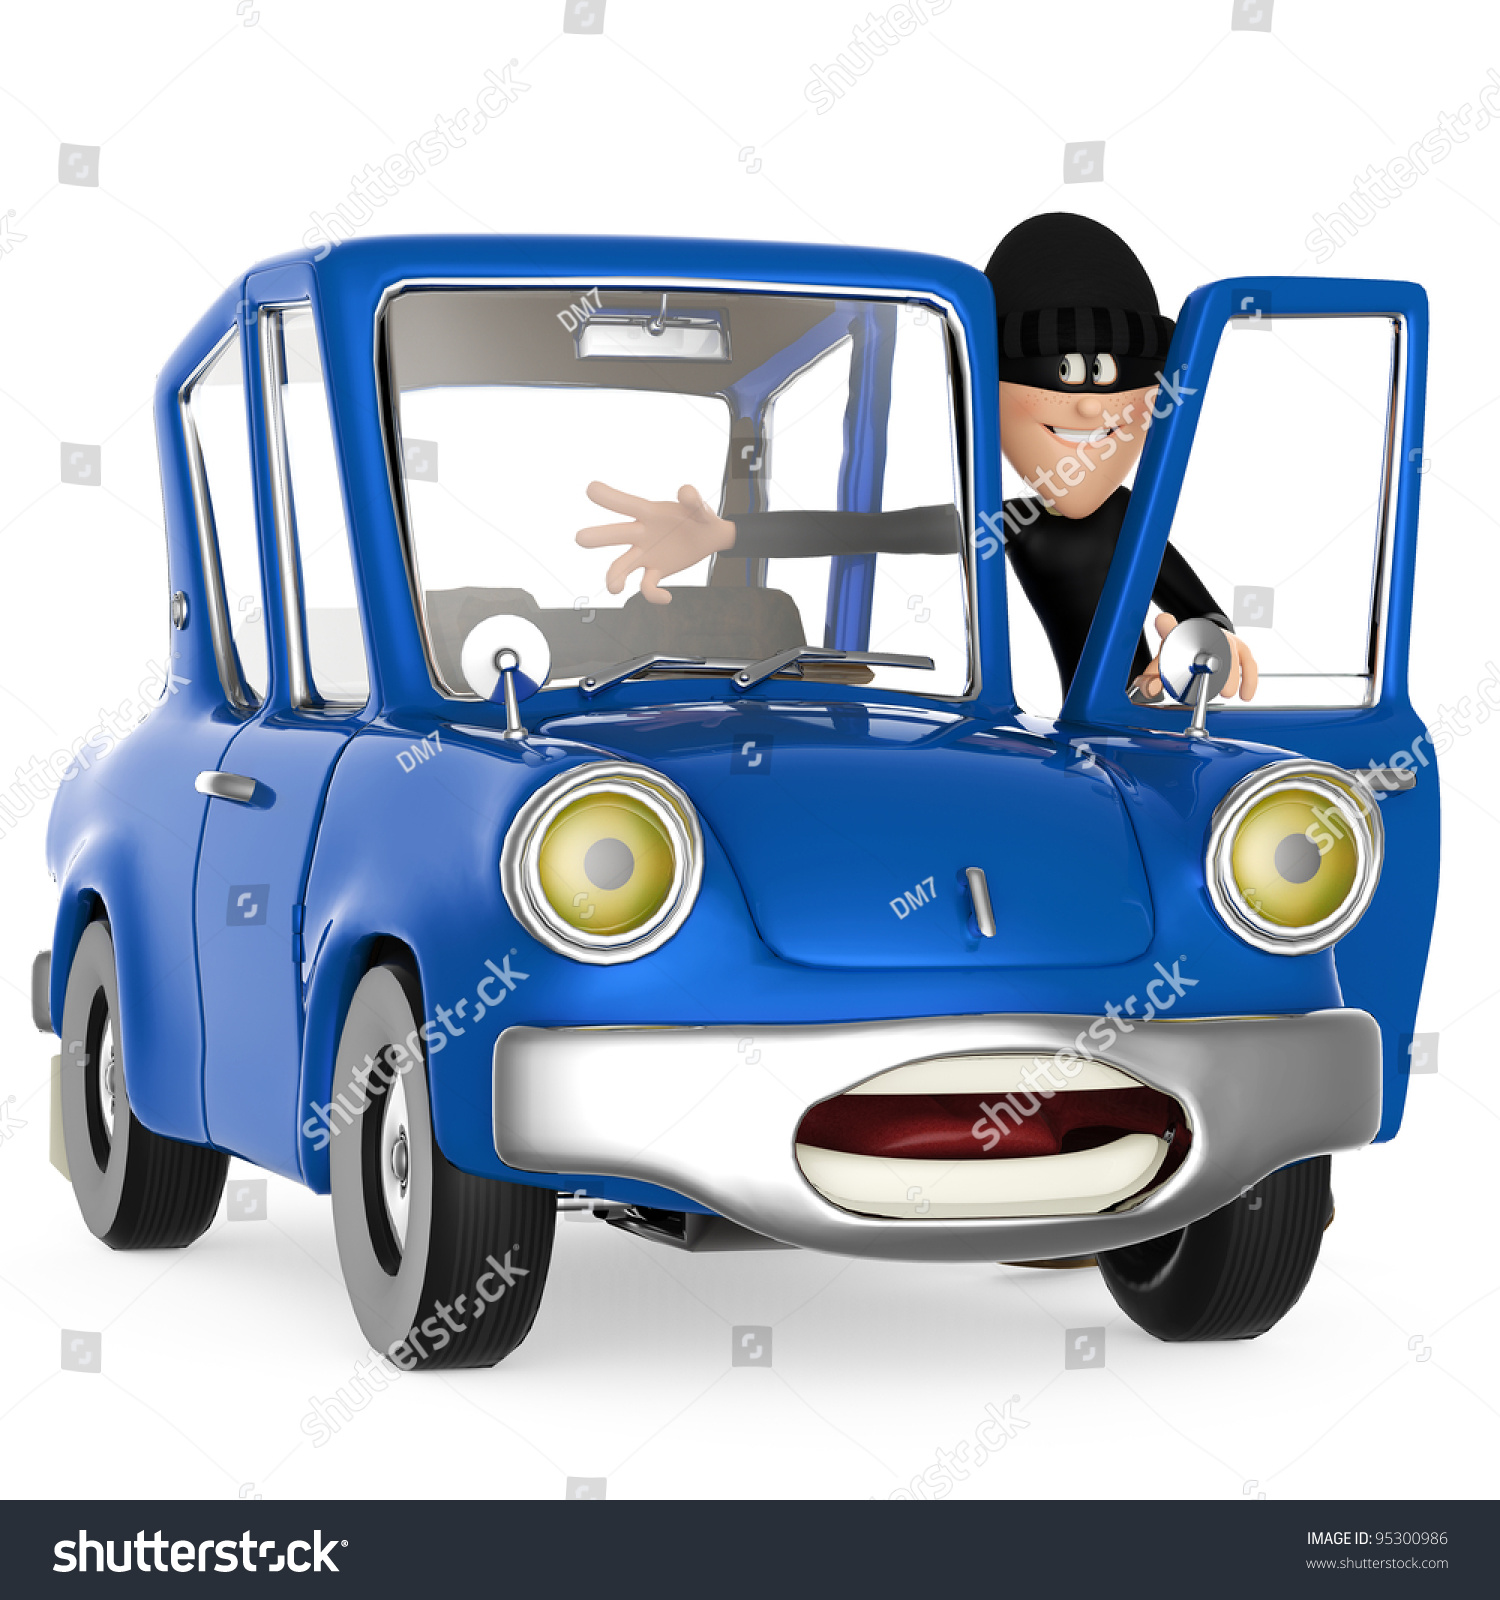 Thief Stealing Car Stock Illustration 95300986